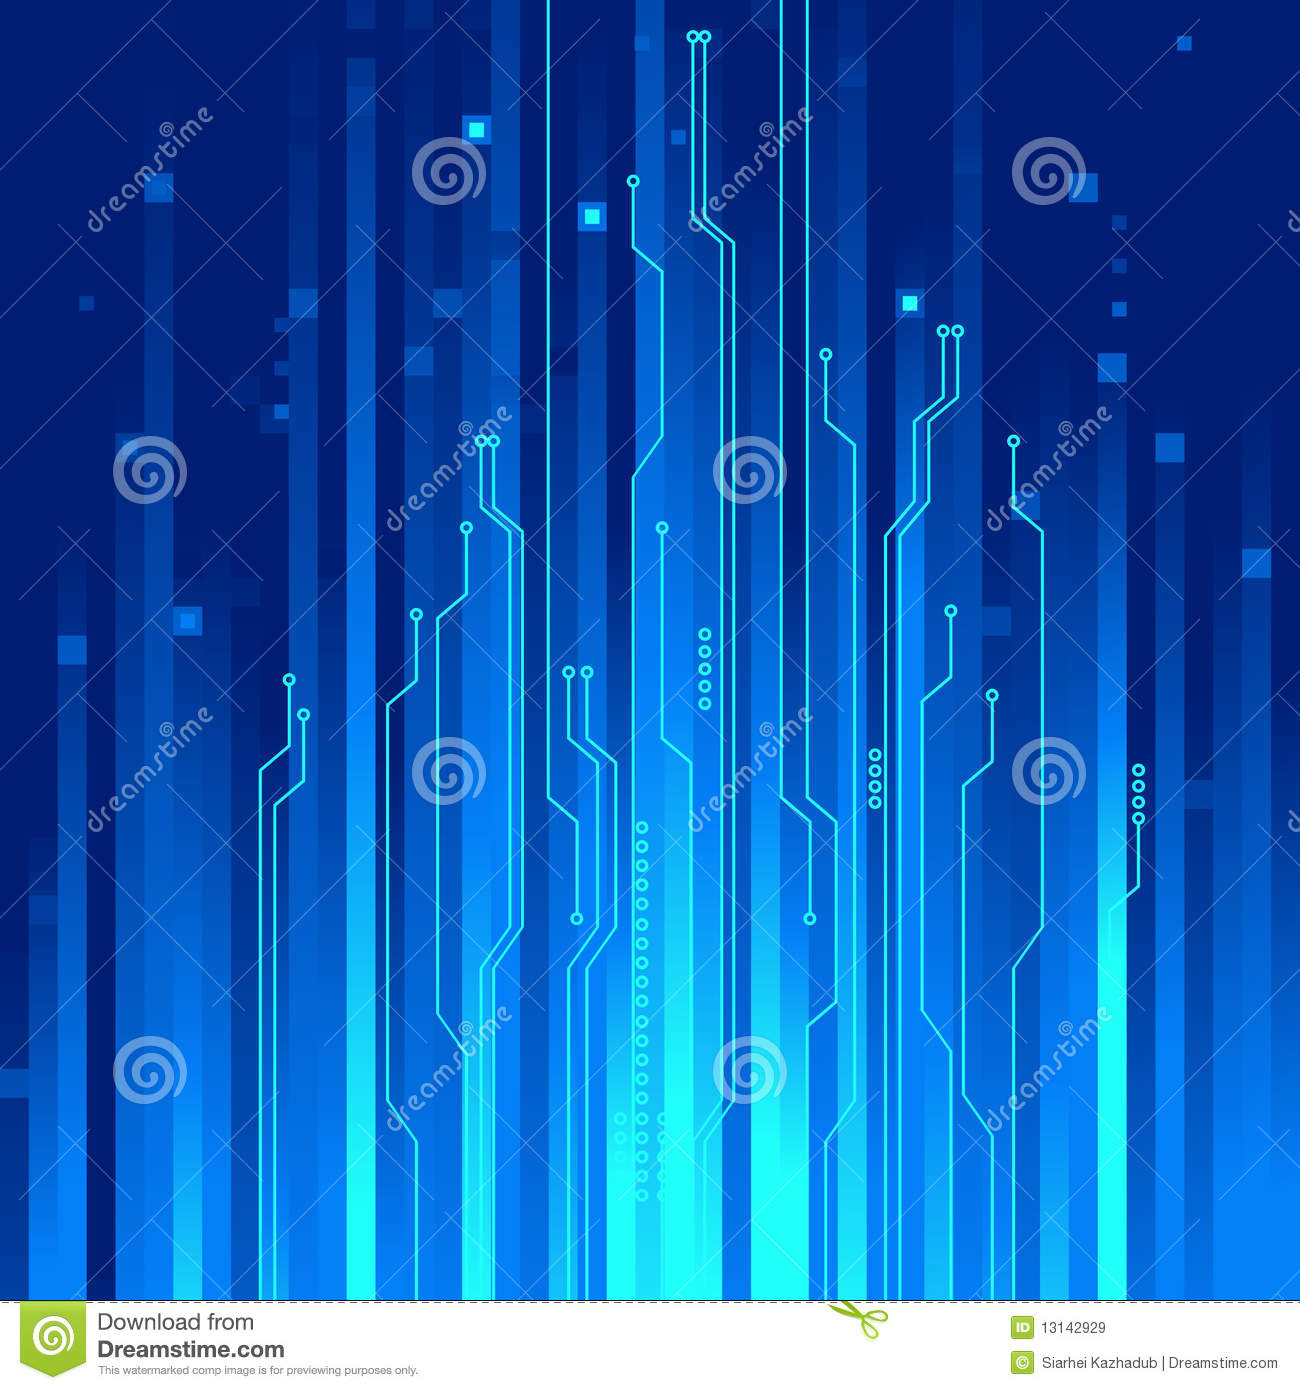 Digital Background Royalty Free Stock Images - Image: 13142929: www.dreamstime.com/royalty-free-stock-images-digital-background...